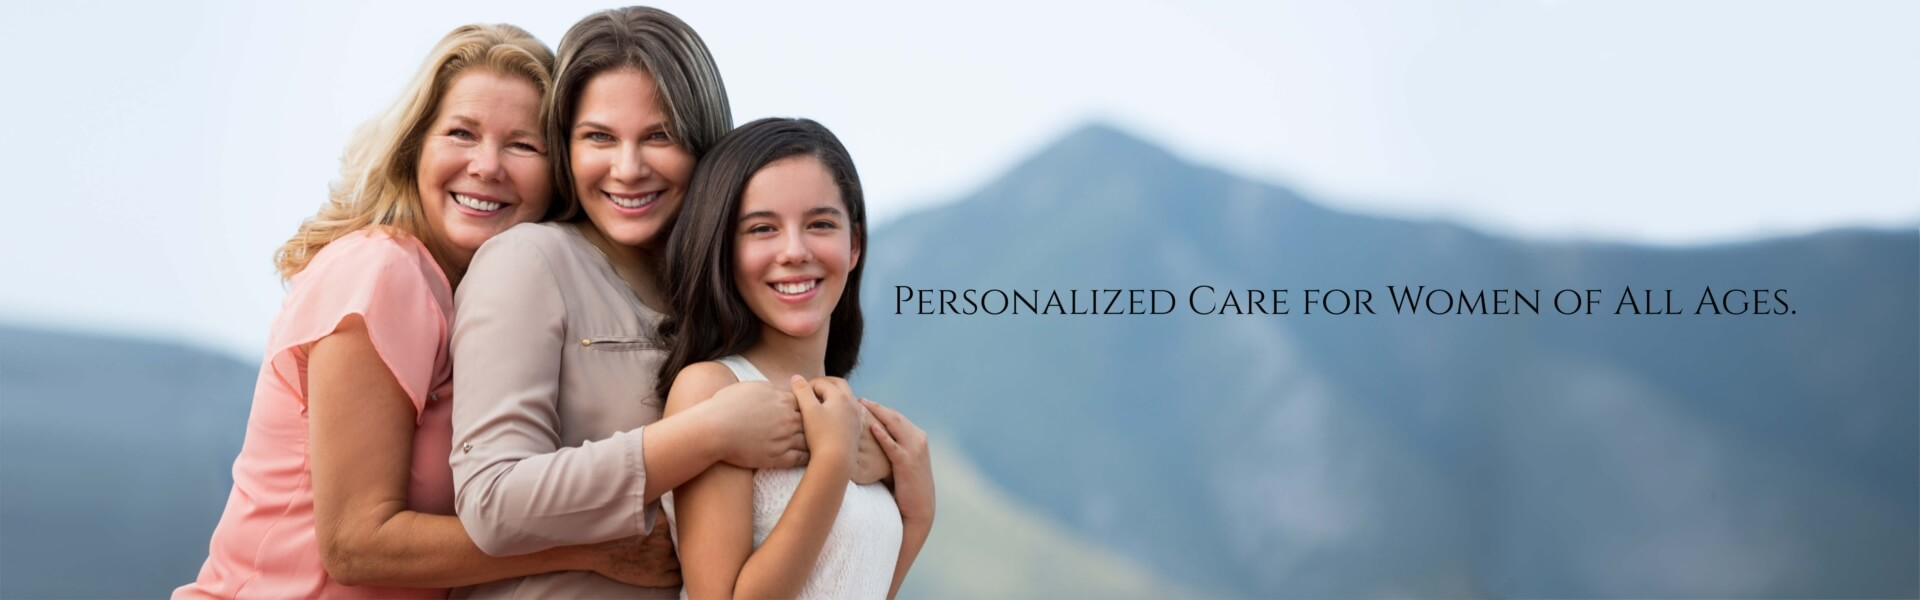 Personalized Care for Women of All Ages.